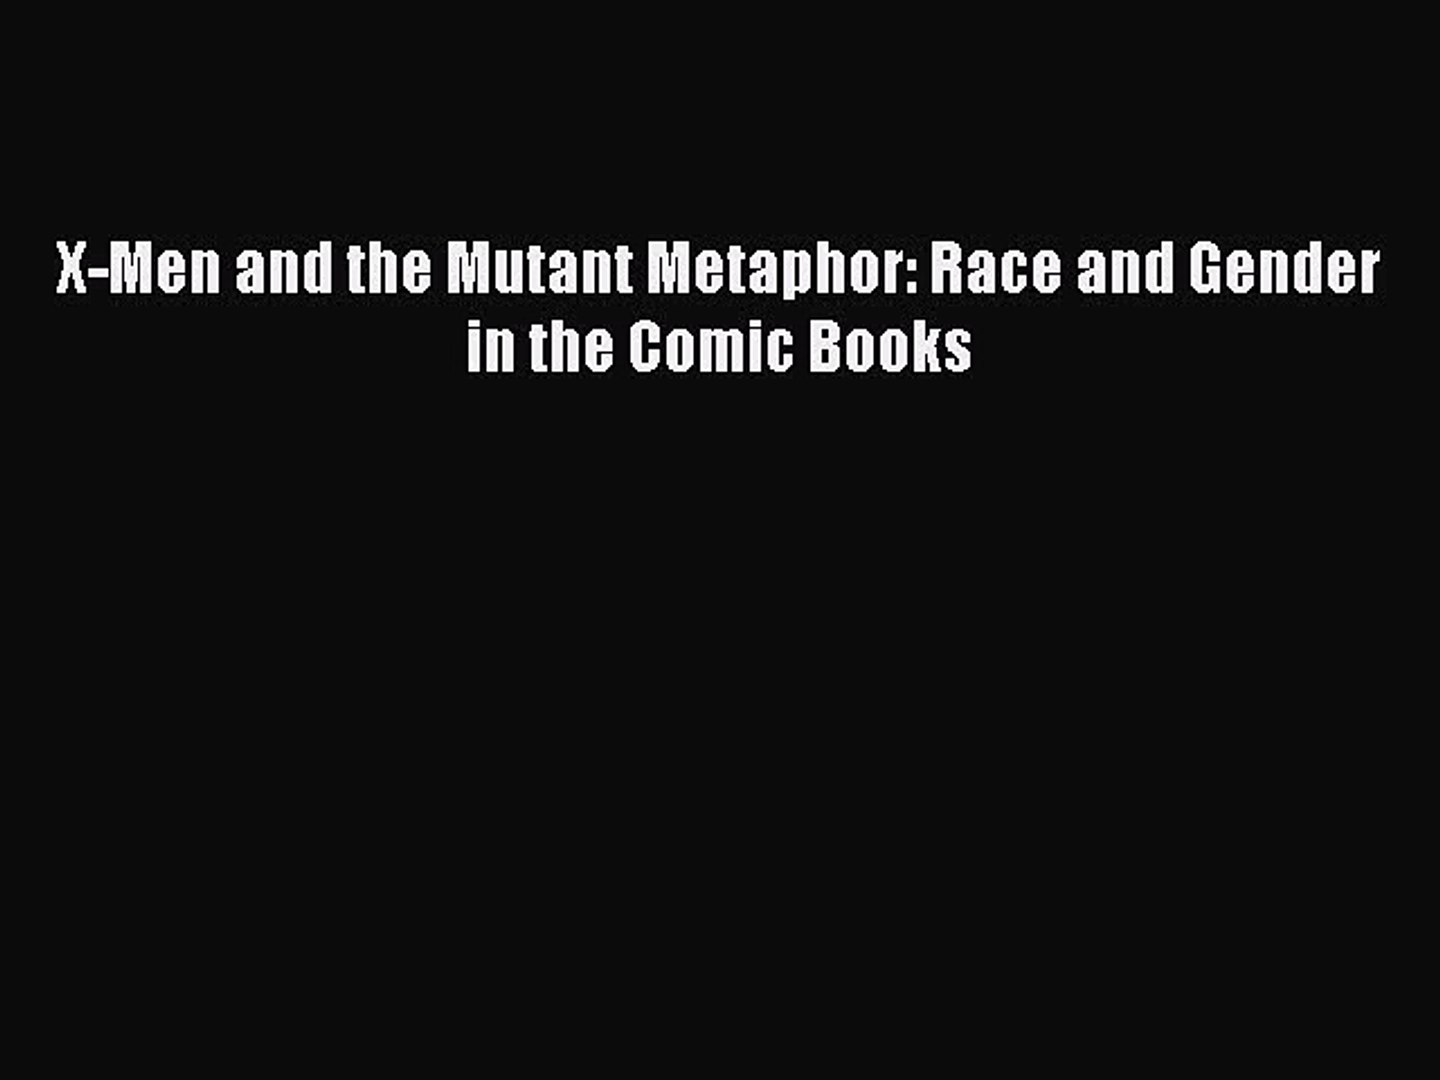 X-Men and the Mutant Metaphor: Race and Gender in the Comic Books